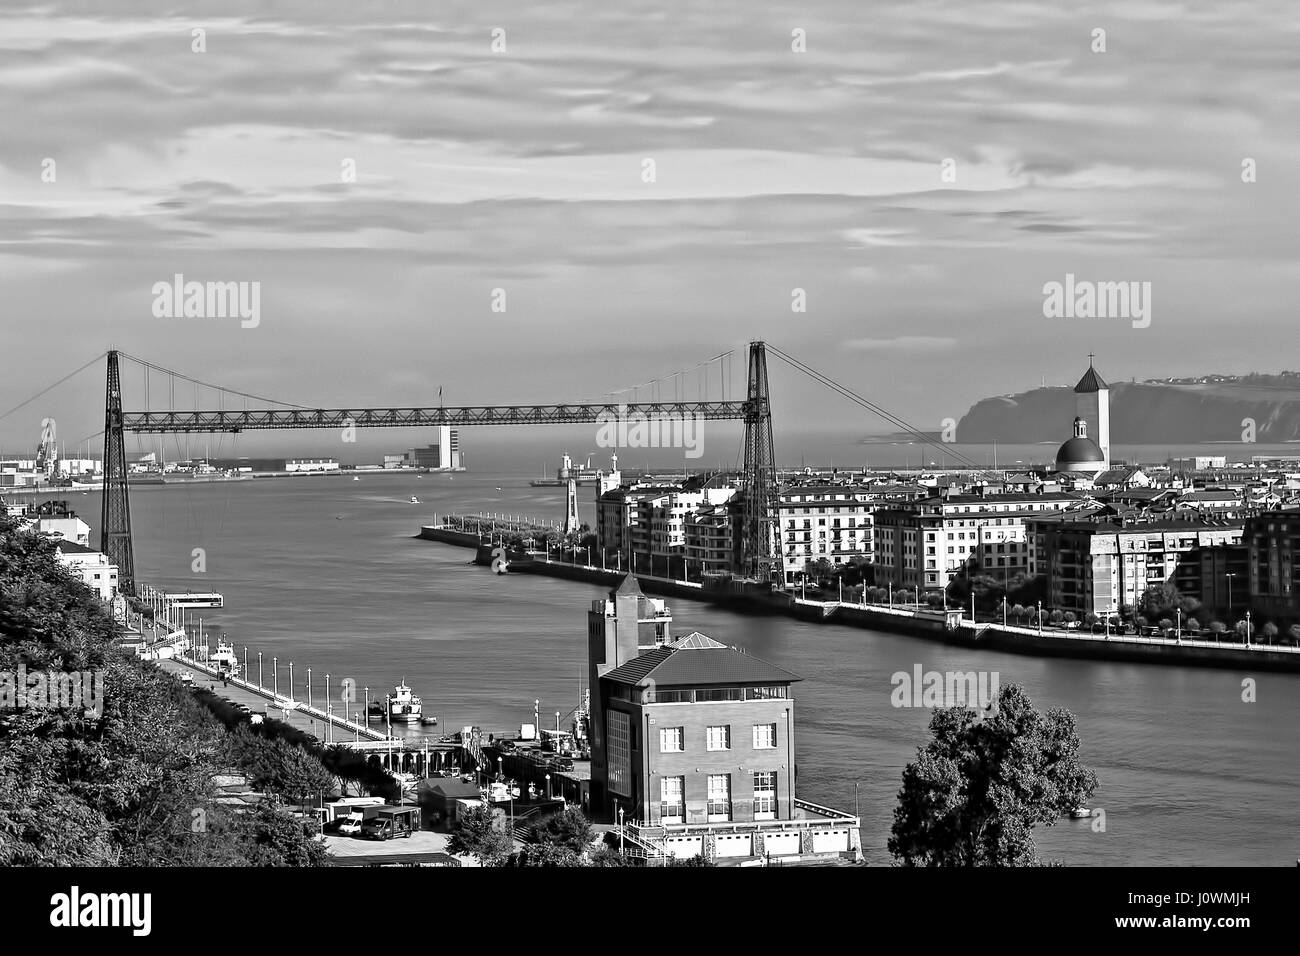 Historic Vizcaya Bridge, Portugalete, Spain - Stock Image